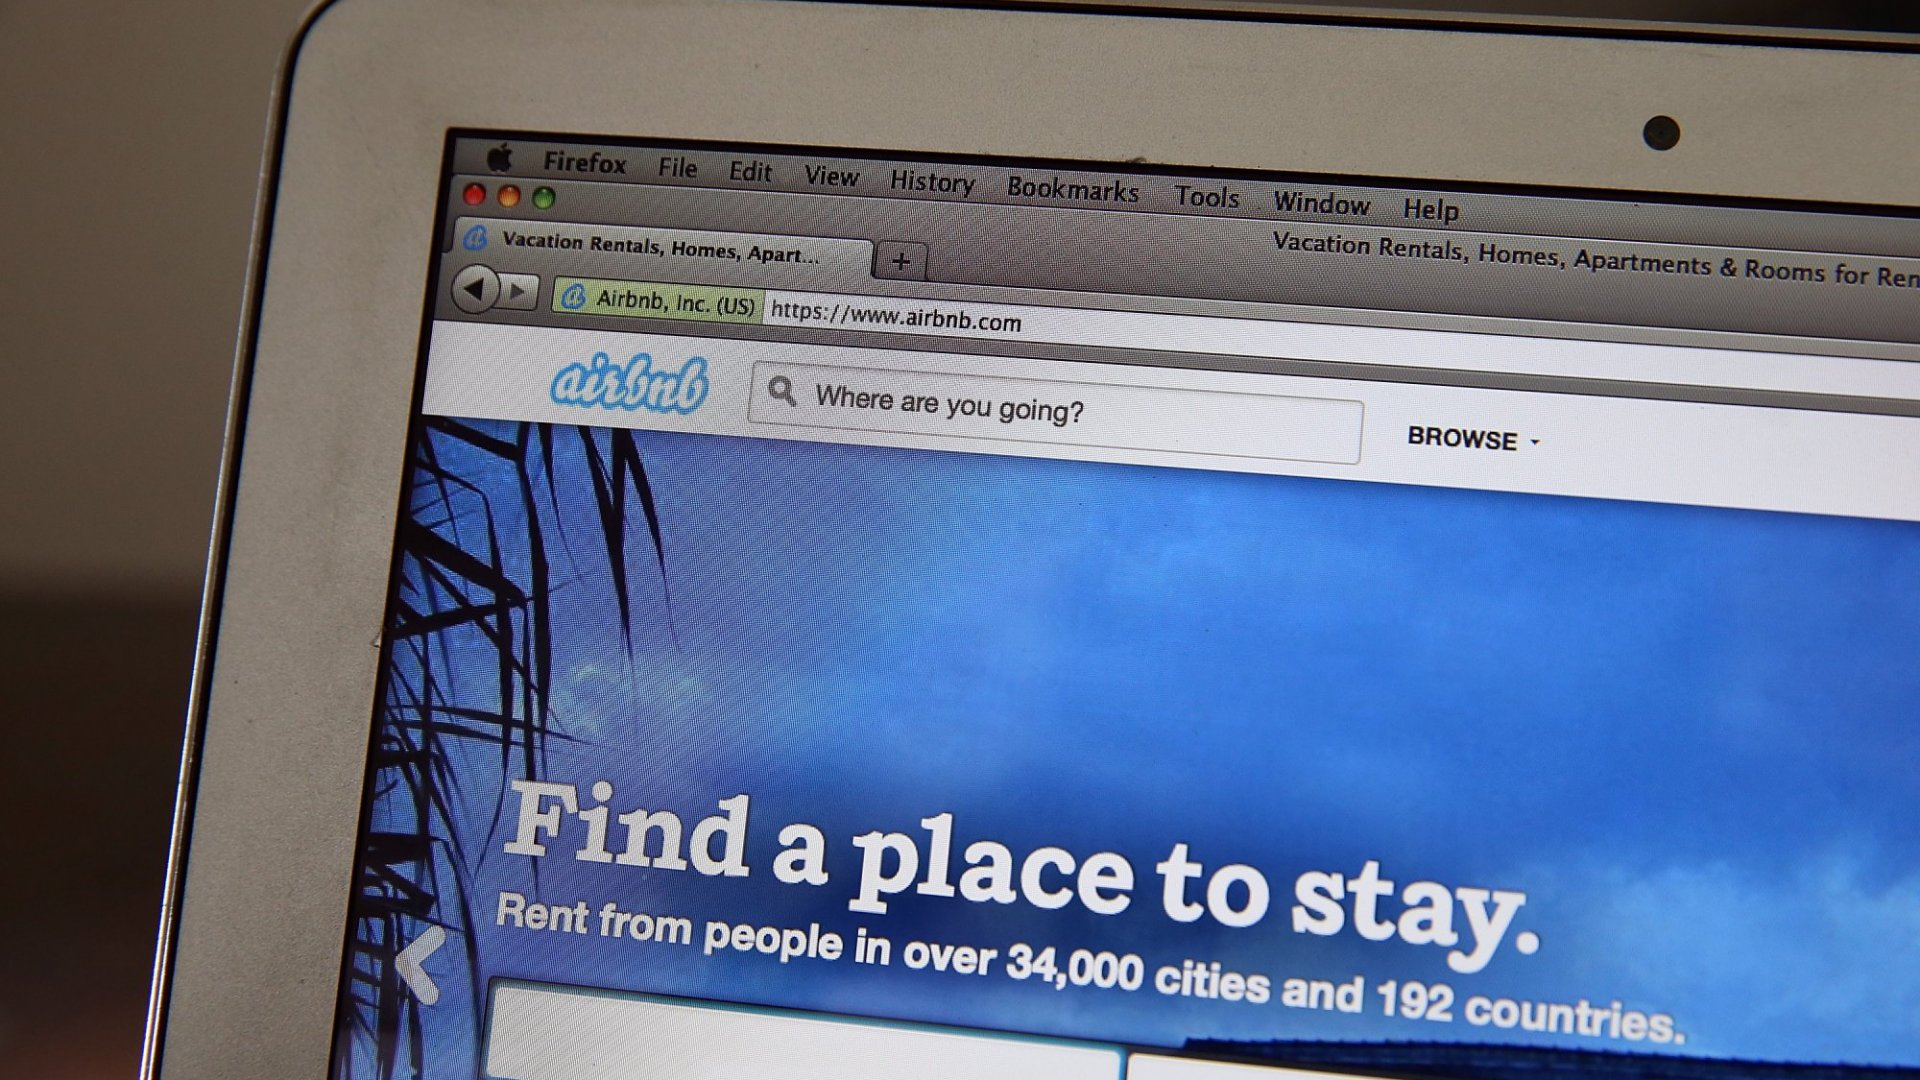 Hotels Should Be Wary of Airbnb's Next Moves